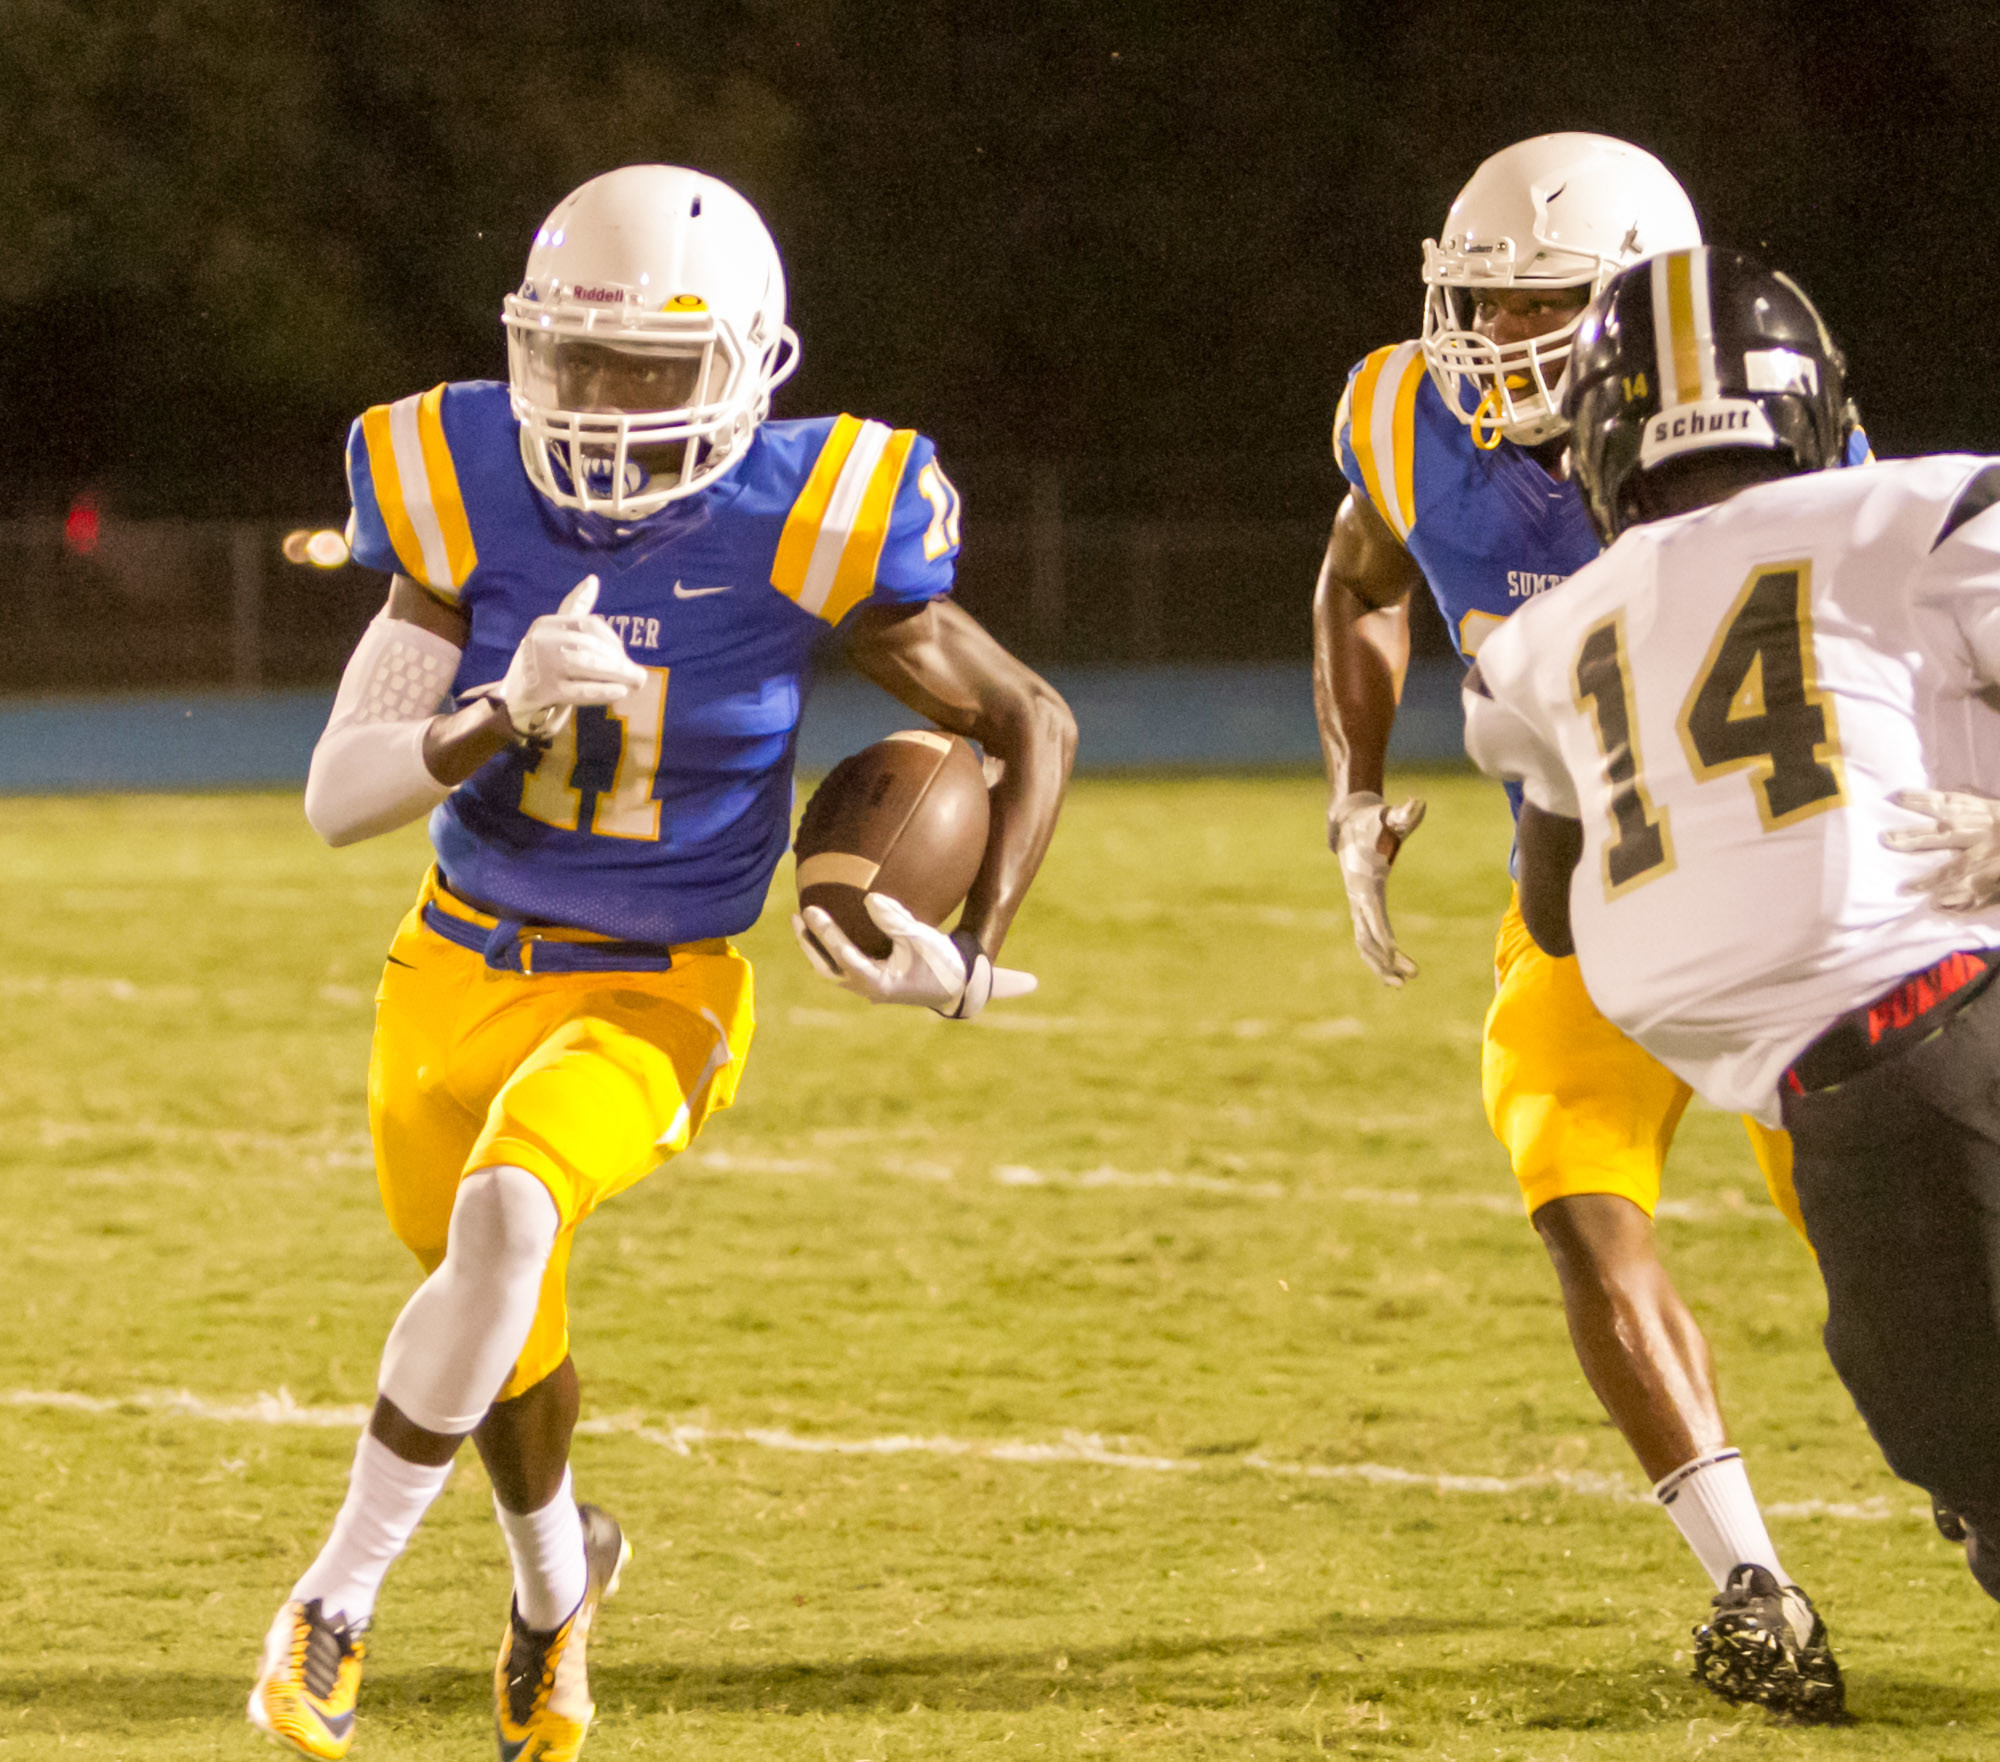 Sumter's Melvin Lundy (11) returns the opening kickoff 80 yards for a touchdown during the Gamecocks' 14-14 tie with Manning High School on Friday during the Sumter Sertoma Football Jamboree at Sumter Memorial Stadium's Freddie Solomon Field.